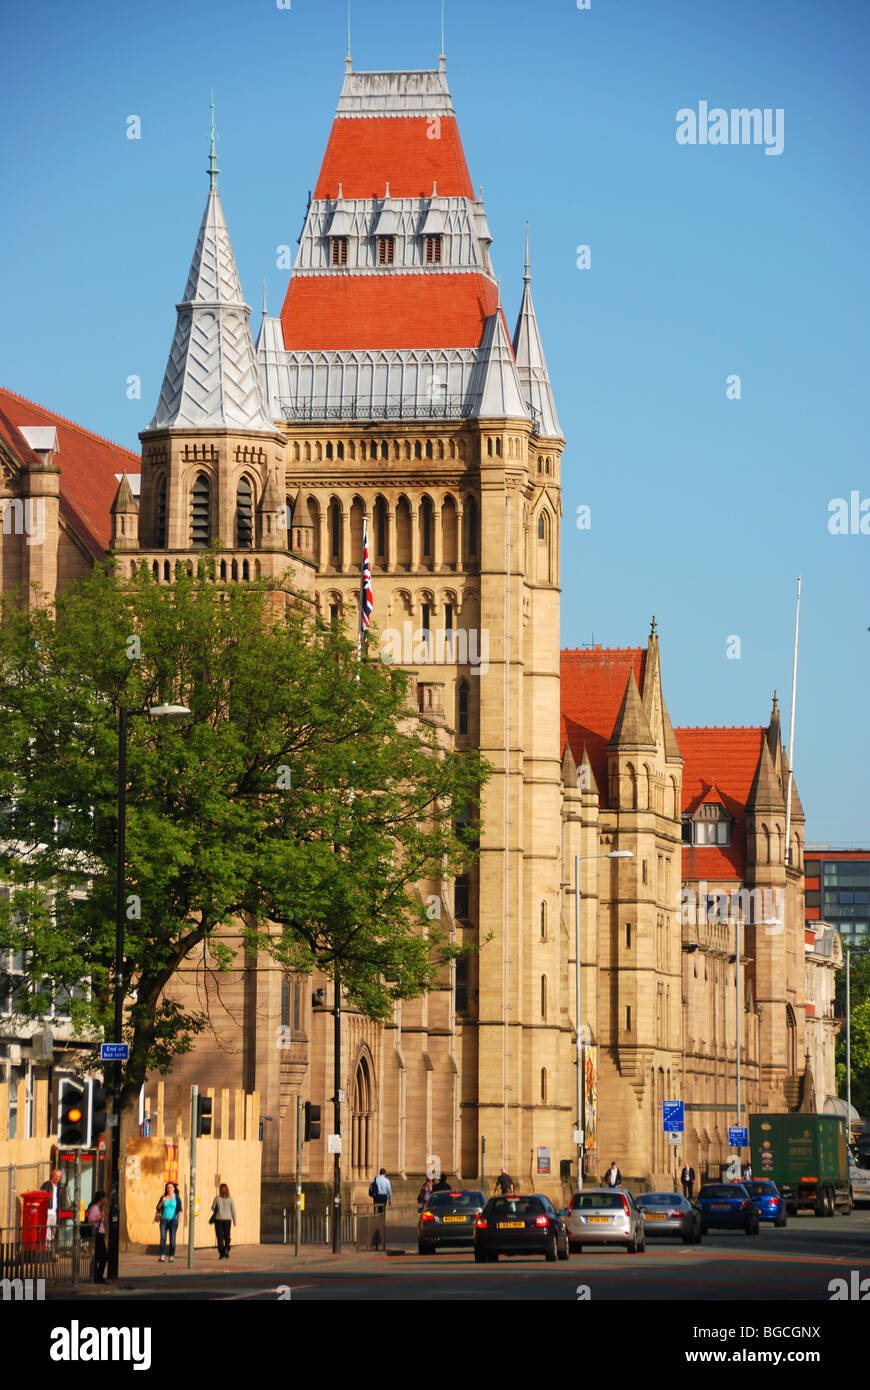 Manchester University and Oxford Road - Stock Image